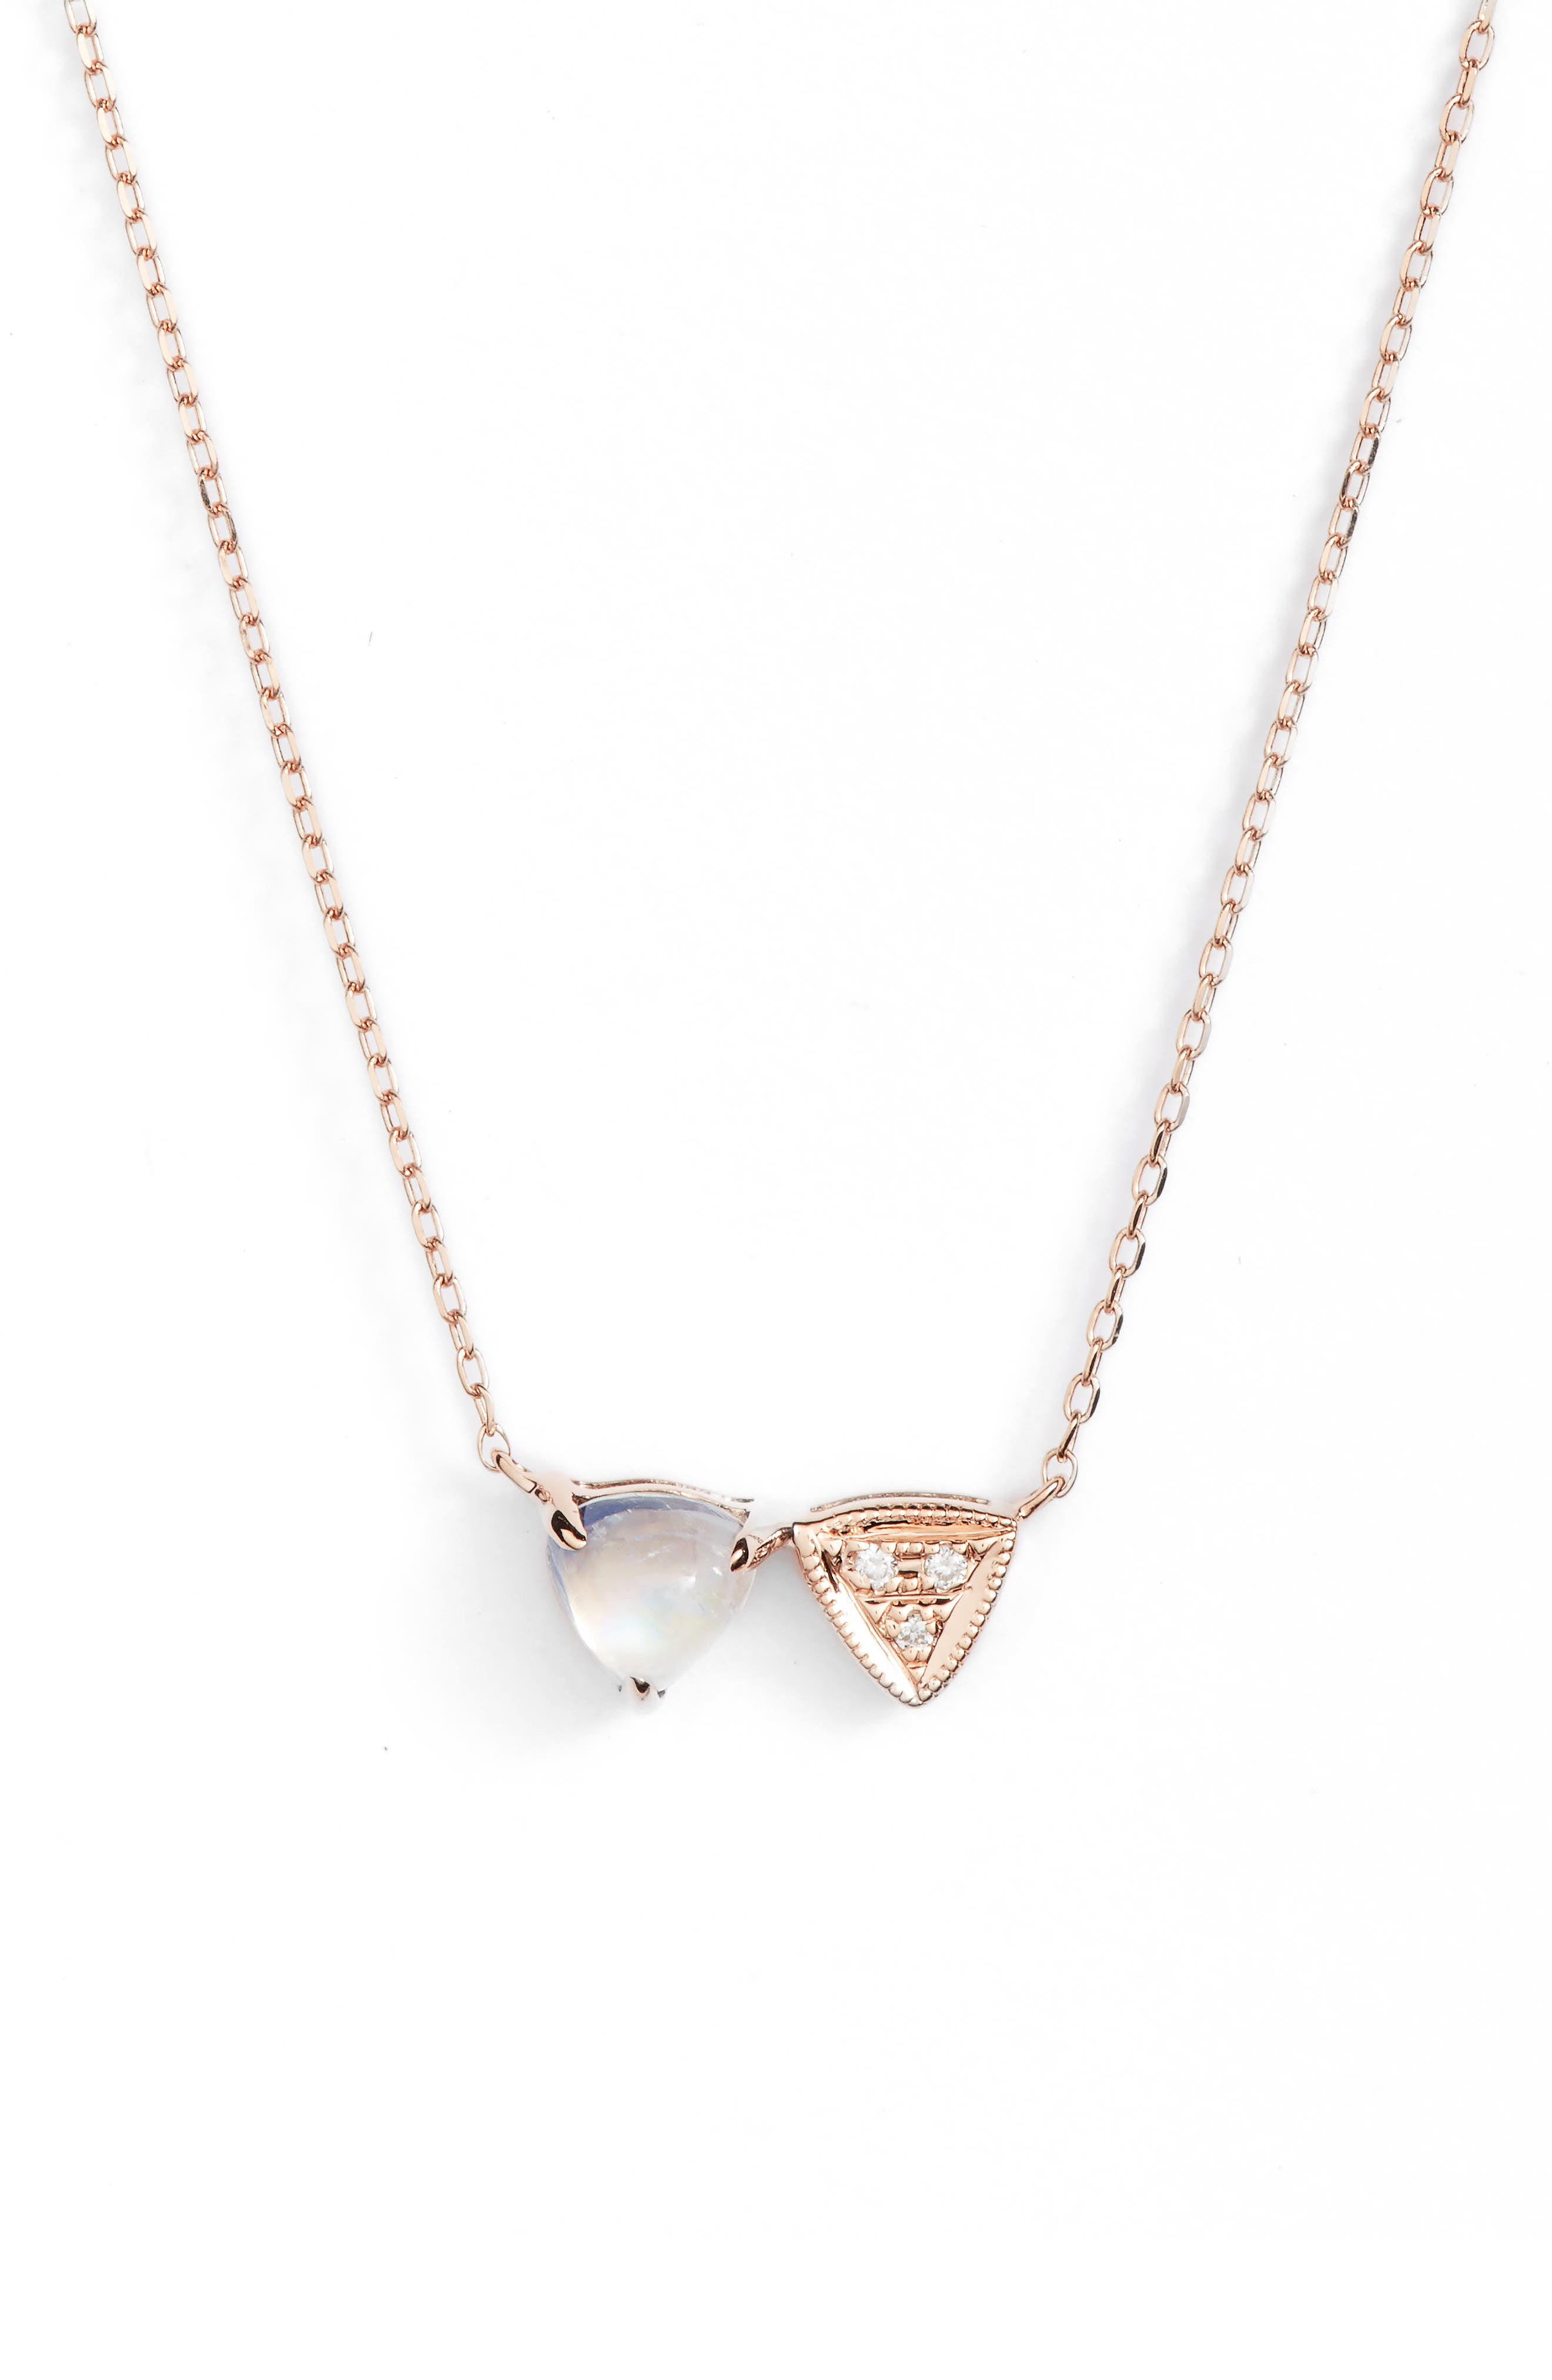 Dana Rebecca Designs Diamond & Stone Pendant Necklace